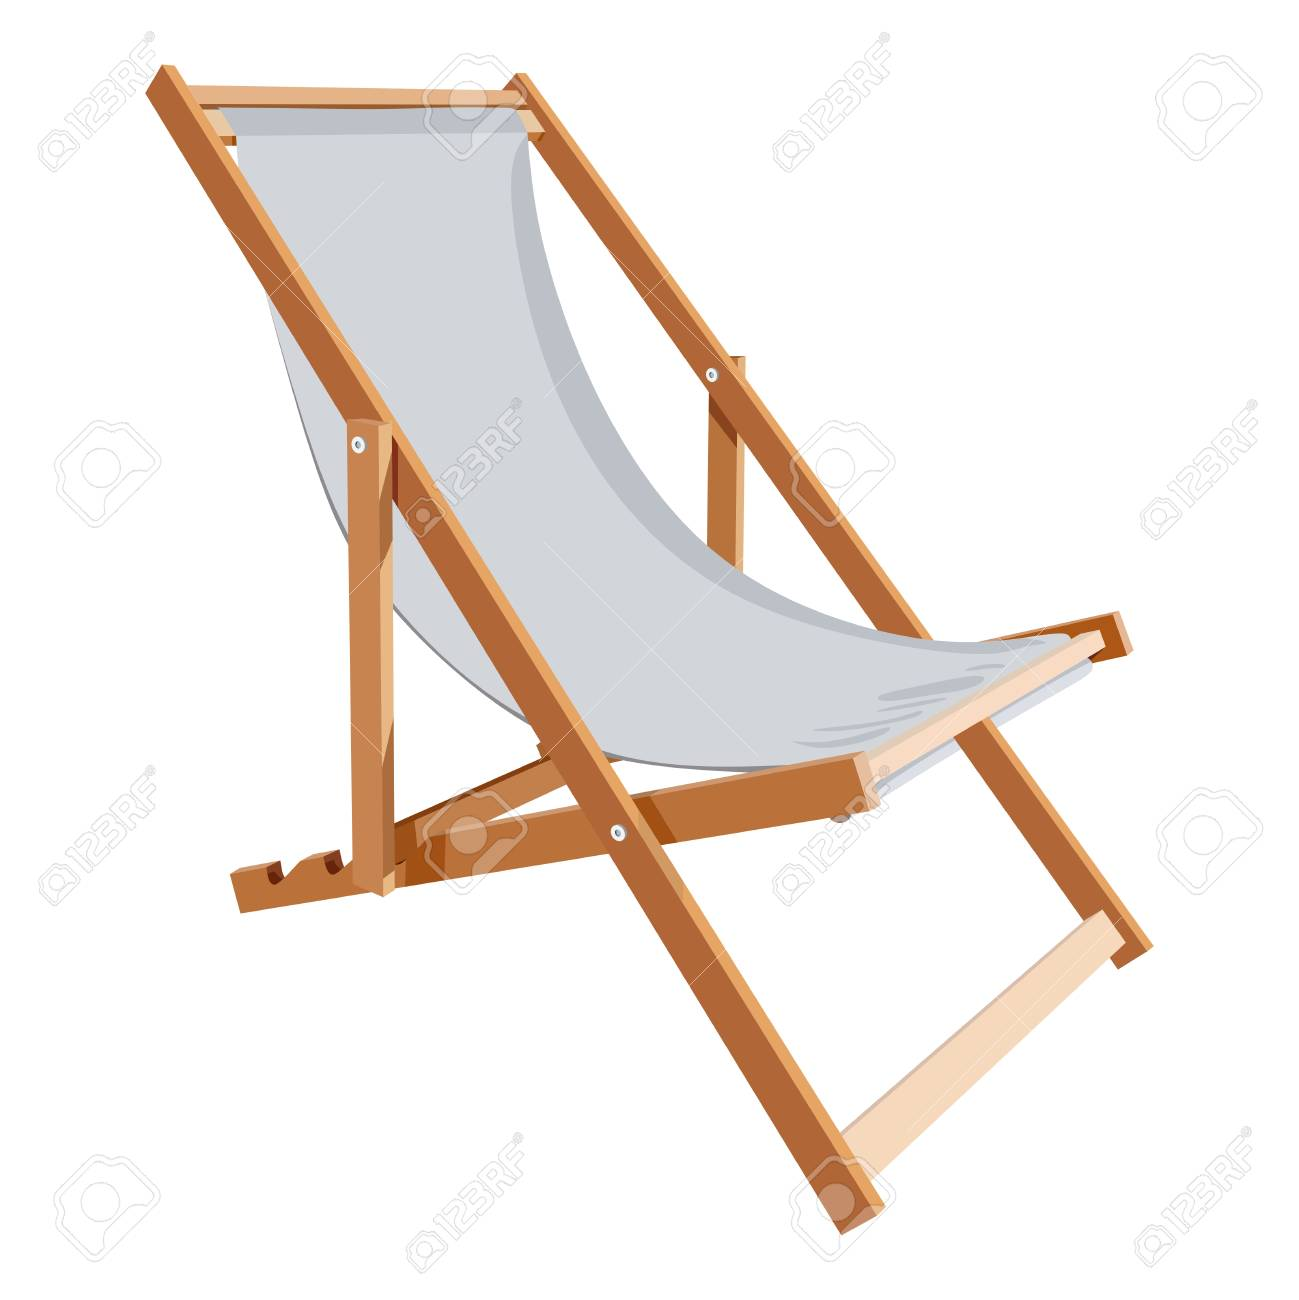 Wooden Chaise Lounge On A White Background Royalty Free Cliparts